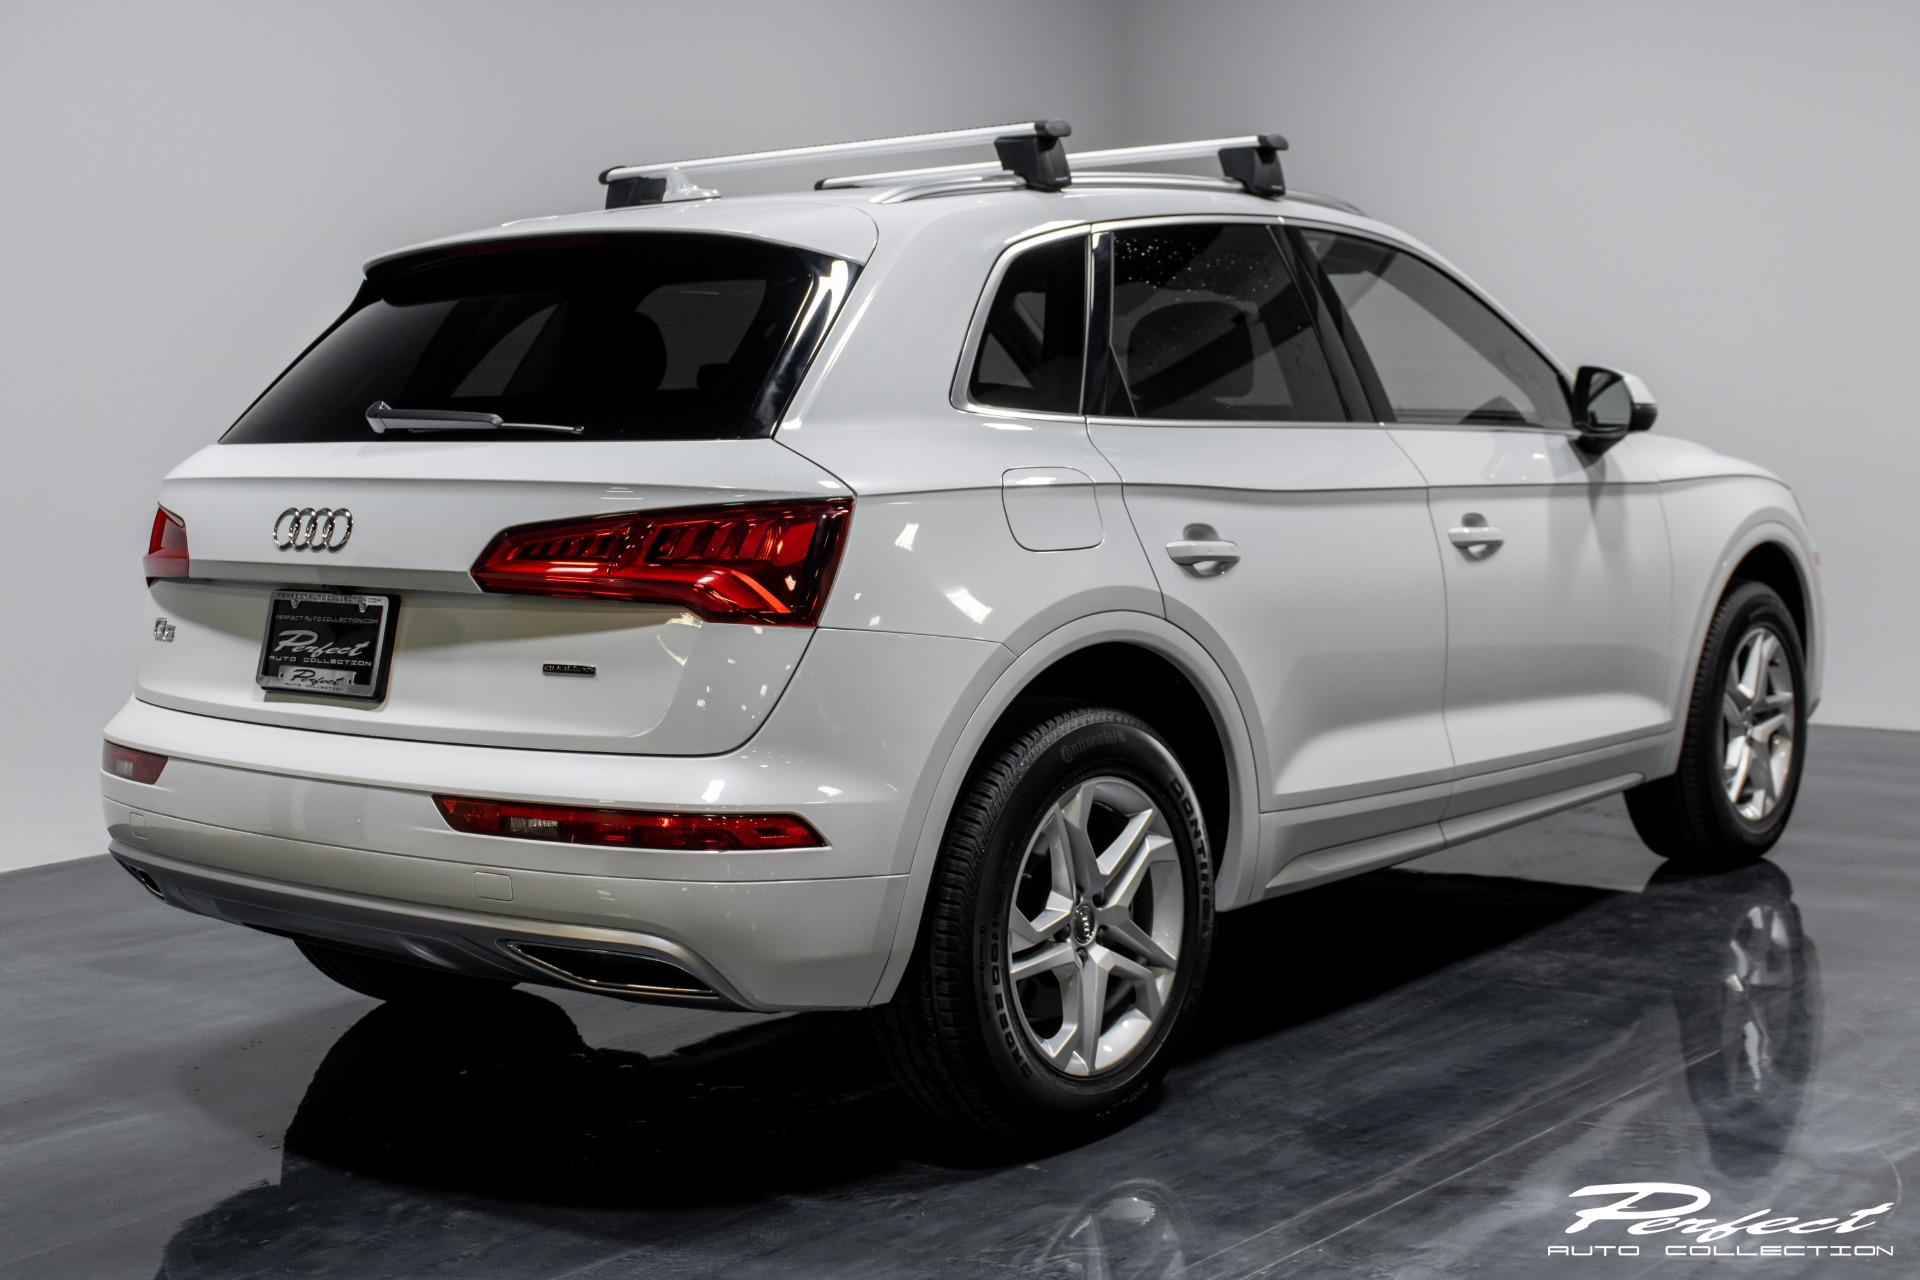 Used 2019 Audi Q5 Premium Sport Utility 4D for sale Sold at Perfect Auto Collection in Akron OH 44310 4